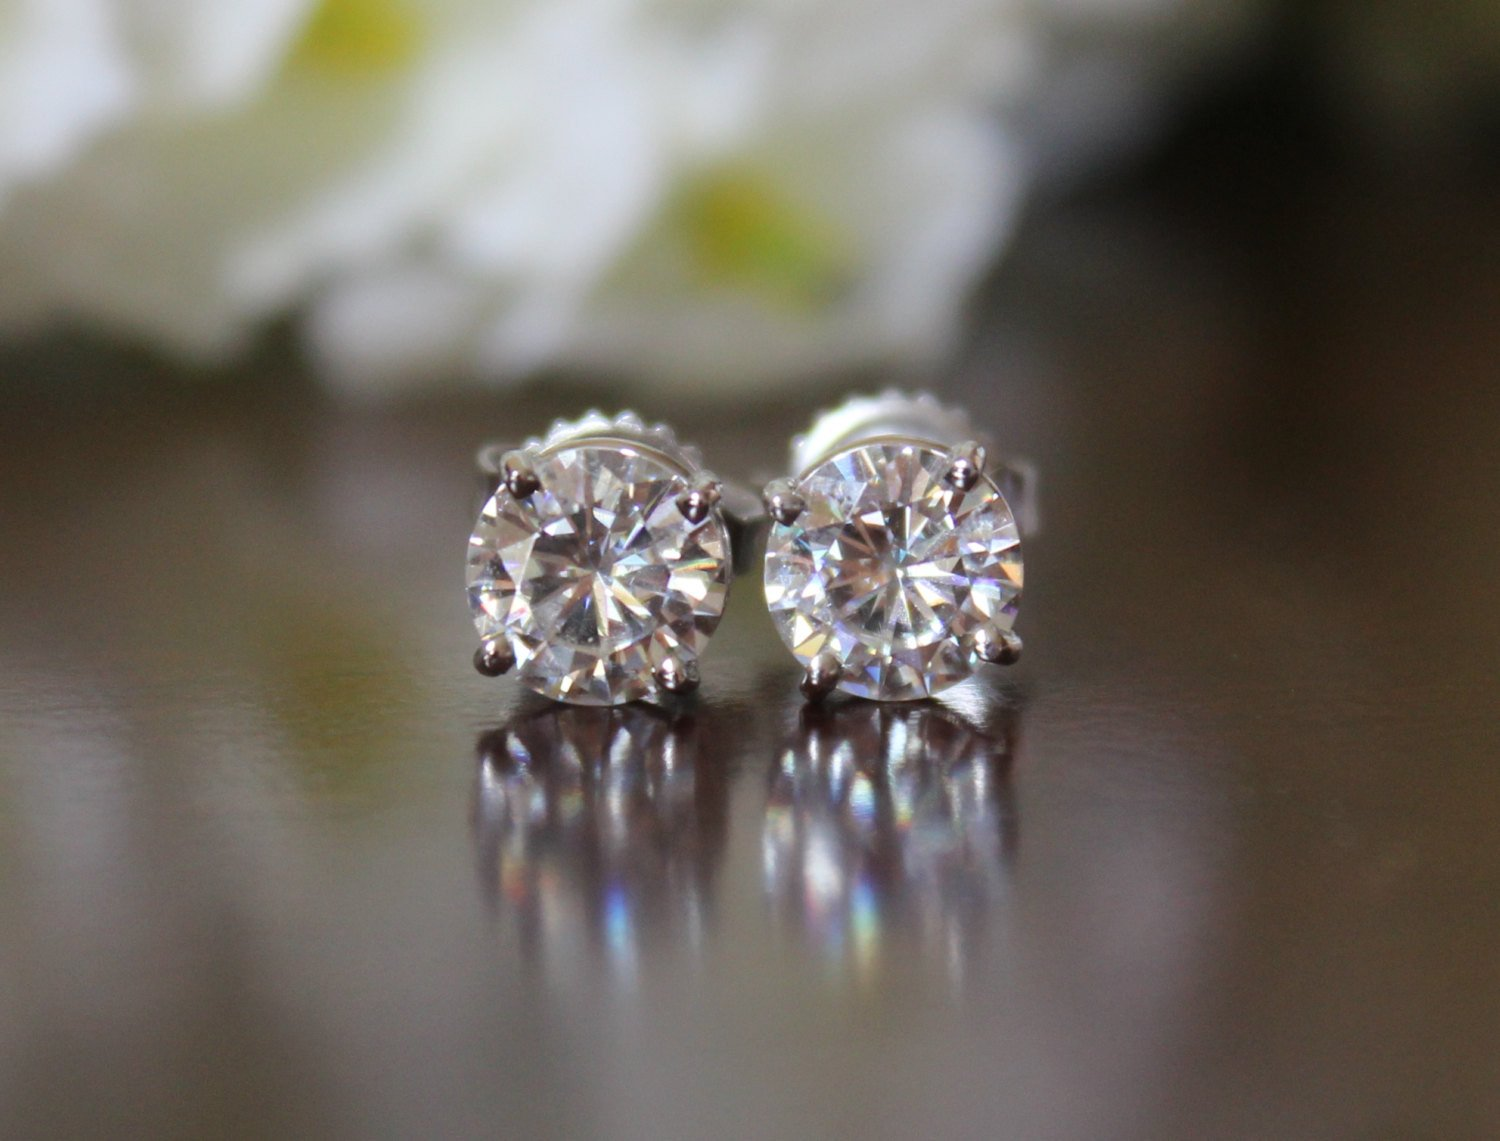 1 ctw Forever One Moissanite Stud Earrings 14k (5mm)